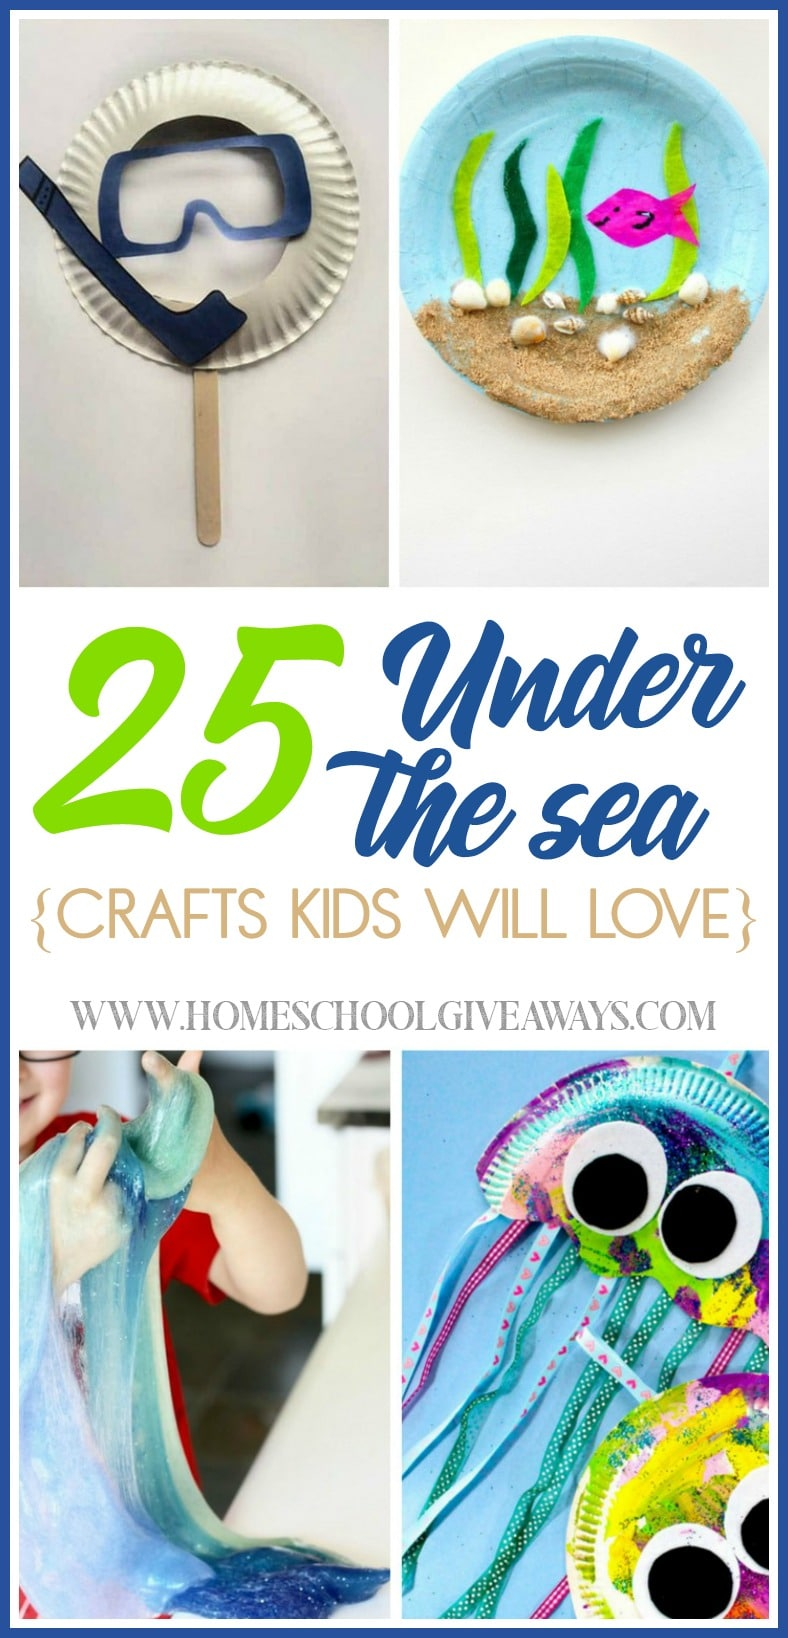 Are you studying the ocean or sea animals? Make your lessons come to life with these Under the Sea crafts your kids will love! :: www.homeschoolgiveaways.com